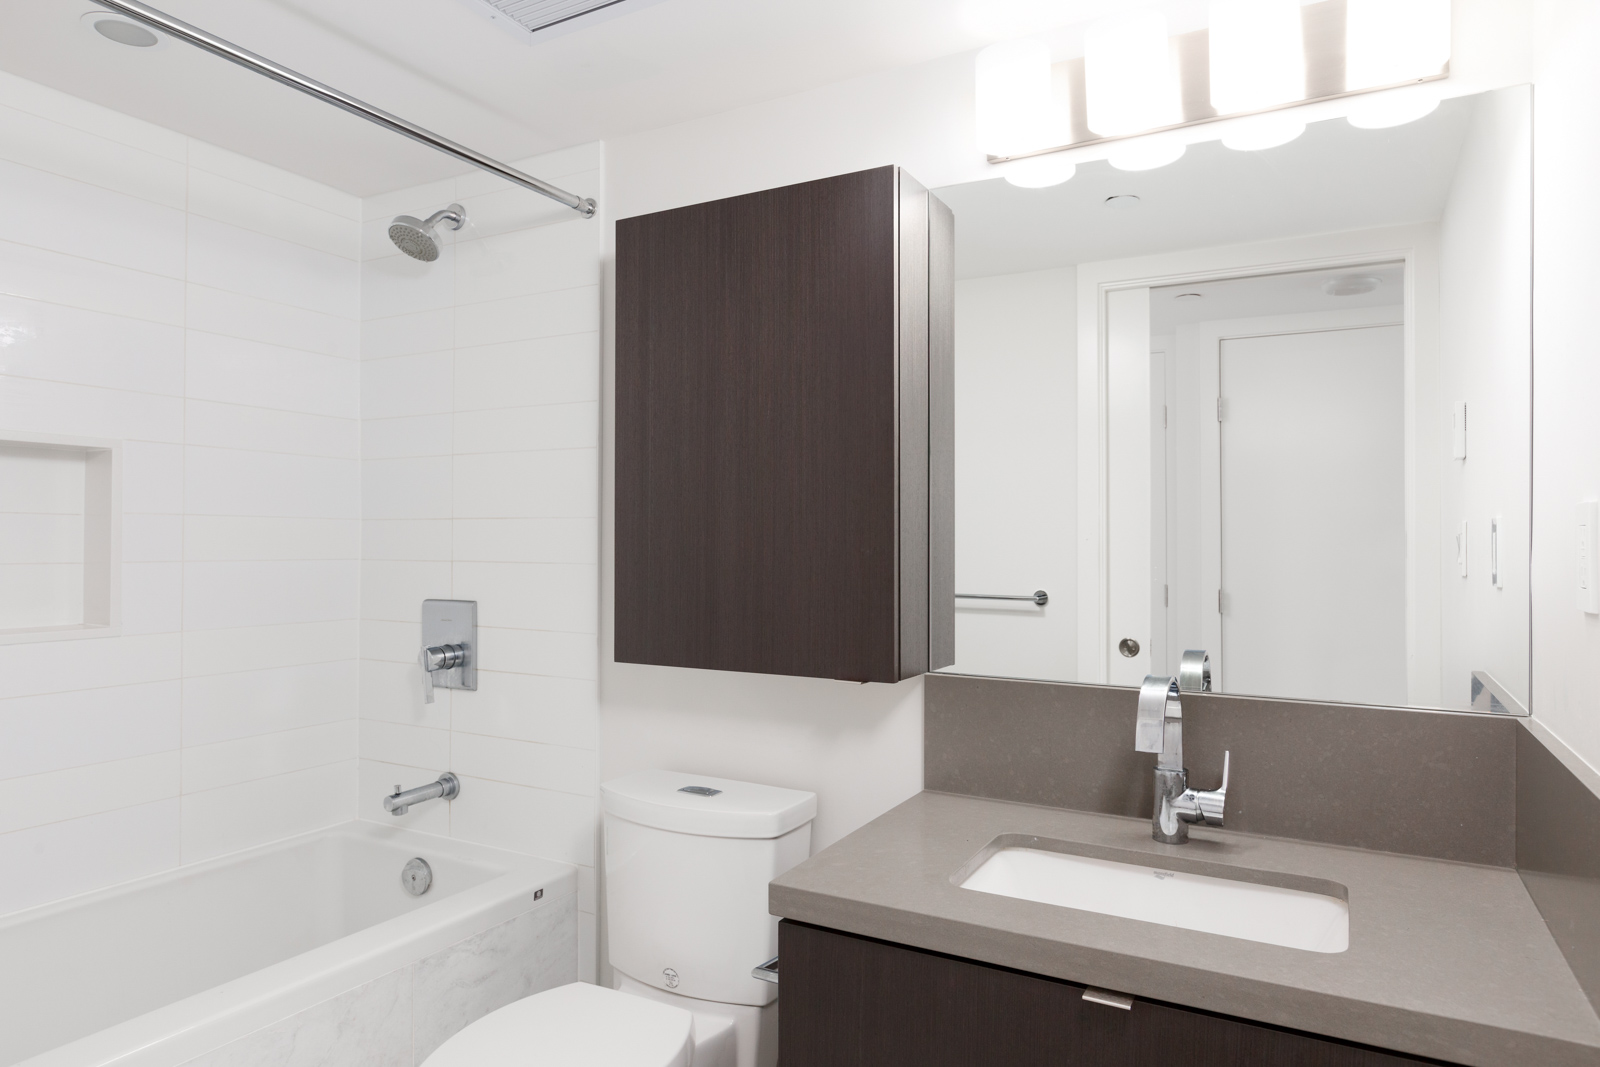 Bathroom of luxury Vancouver rental condo.